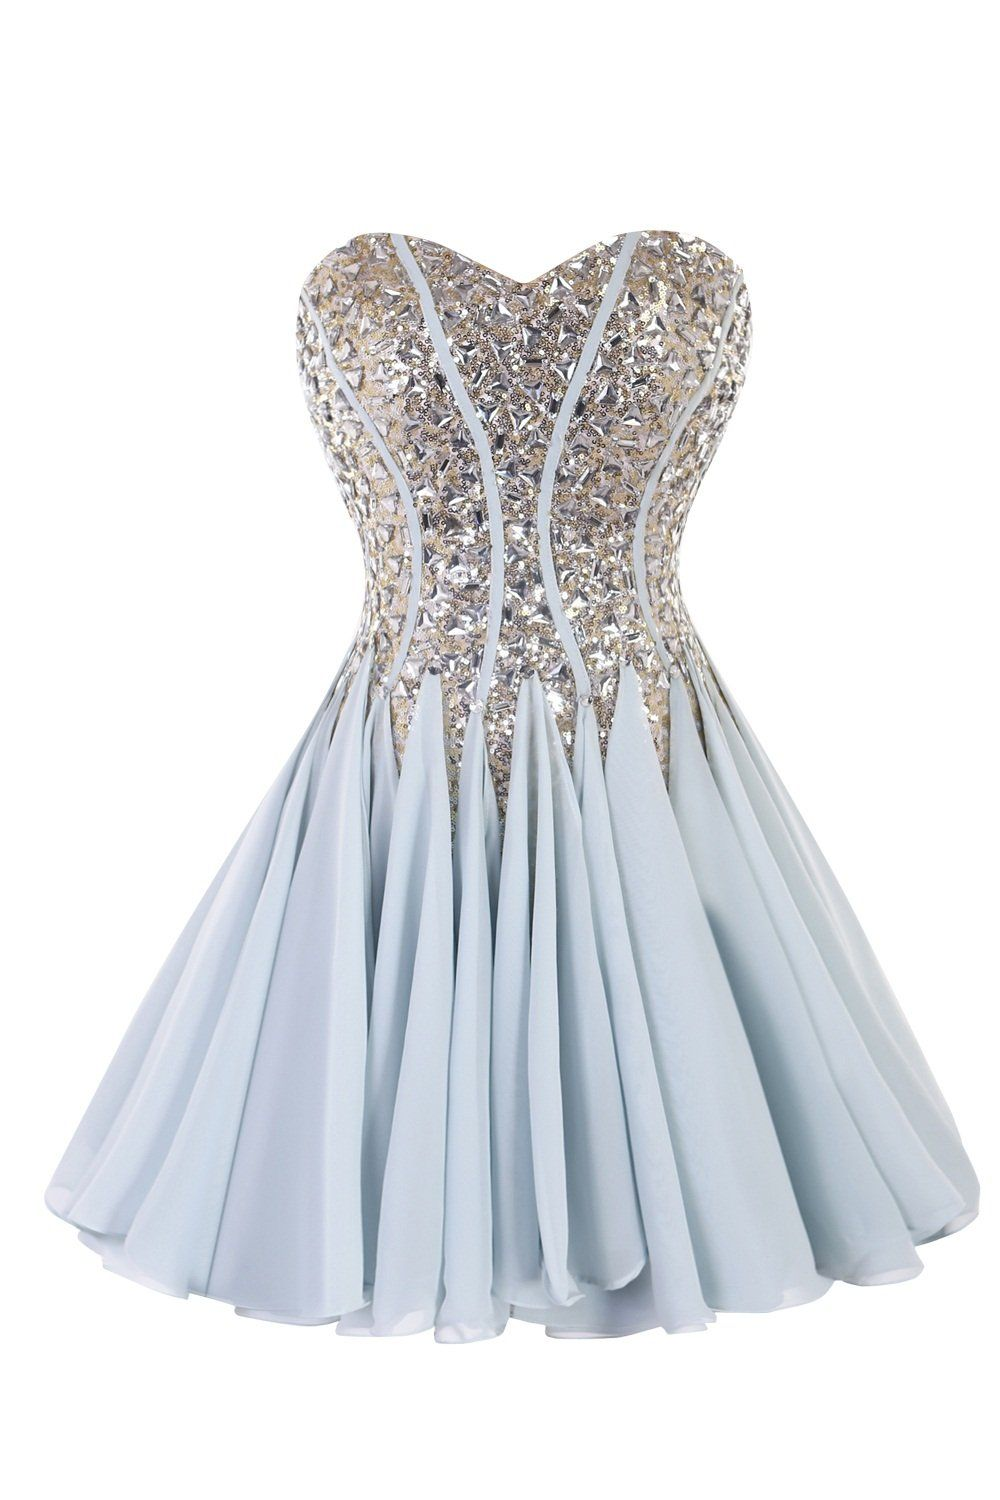 Judybridal Women Charming Short Homecoming Dress Prom Gown With